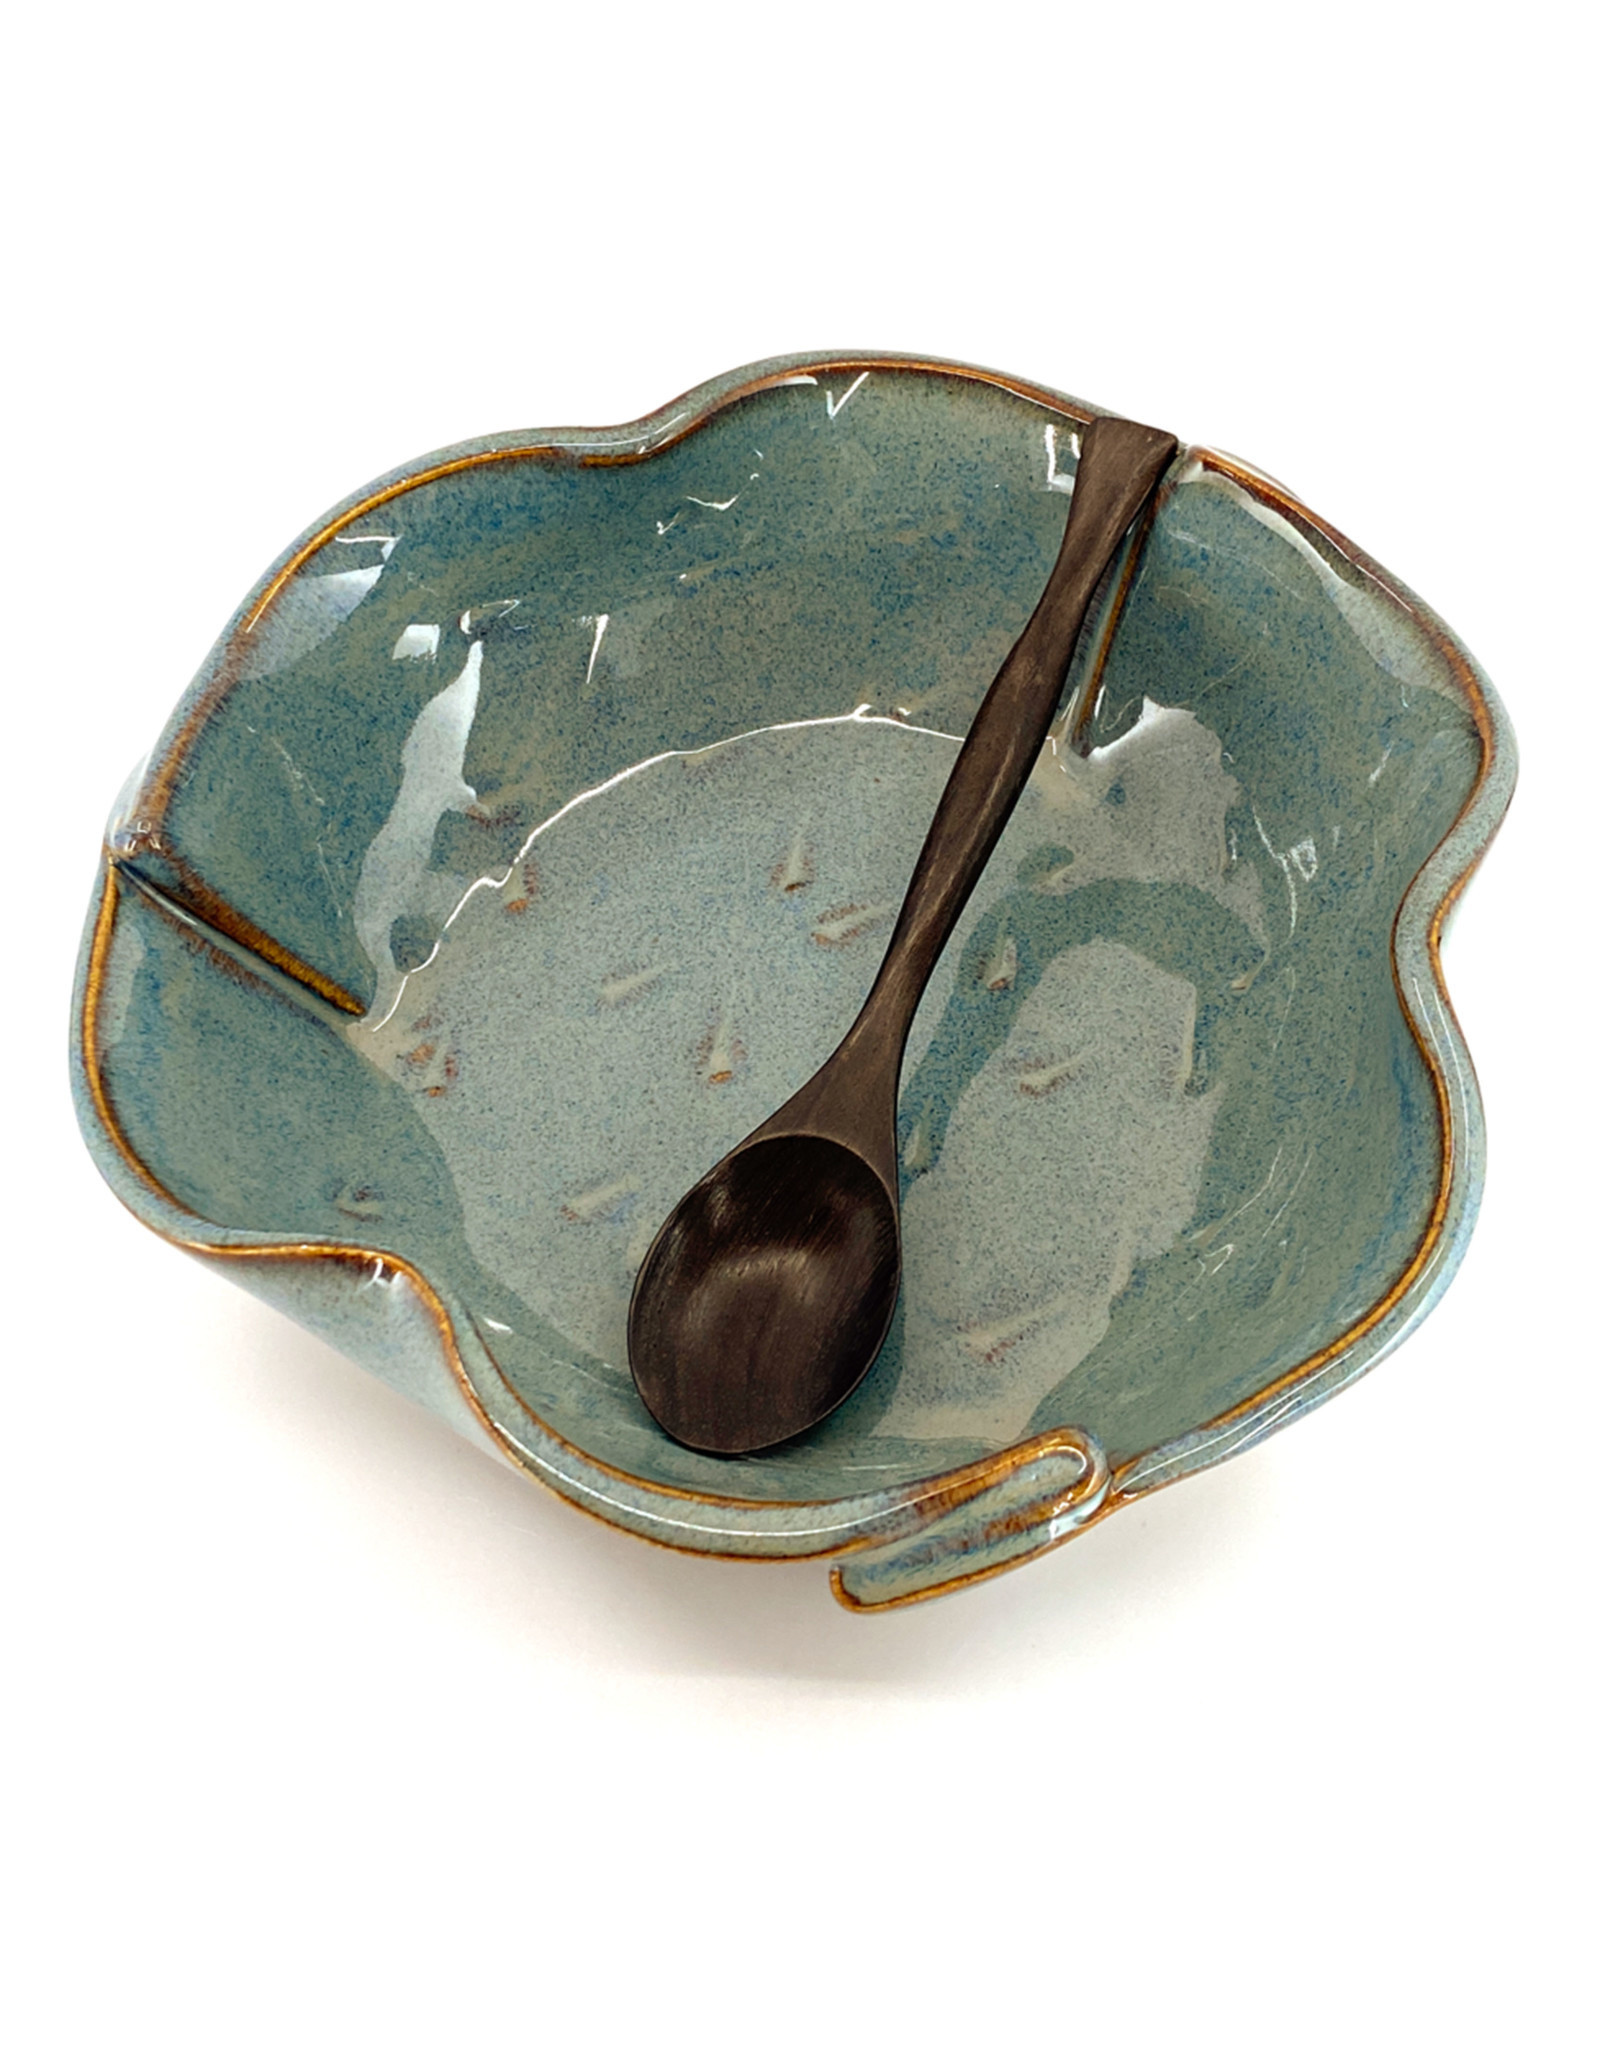 HILBORN POTTERY BRIE DISH WITH SPOON